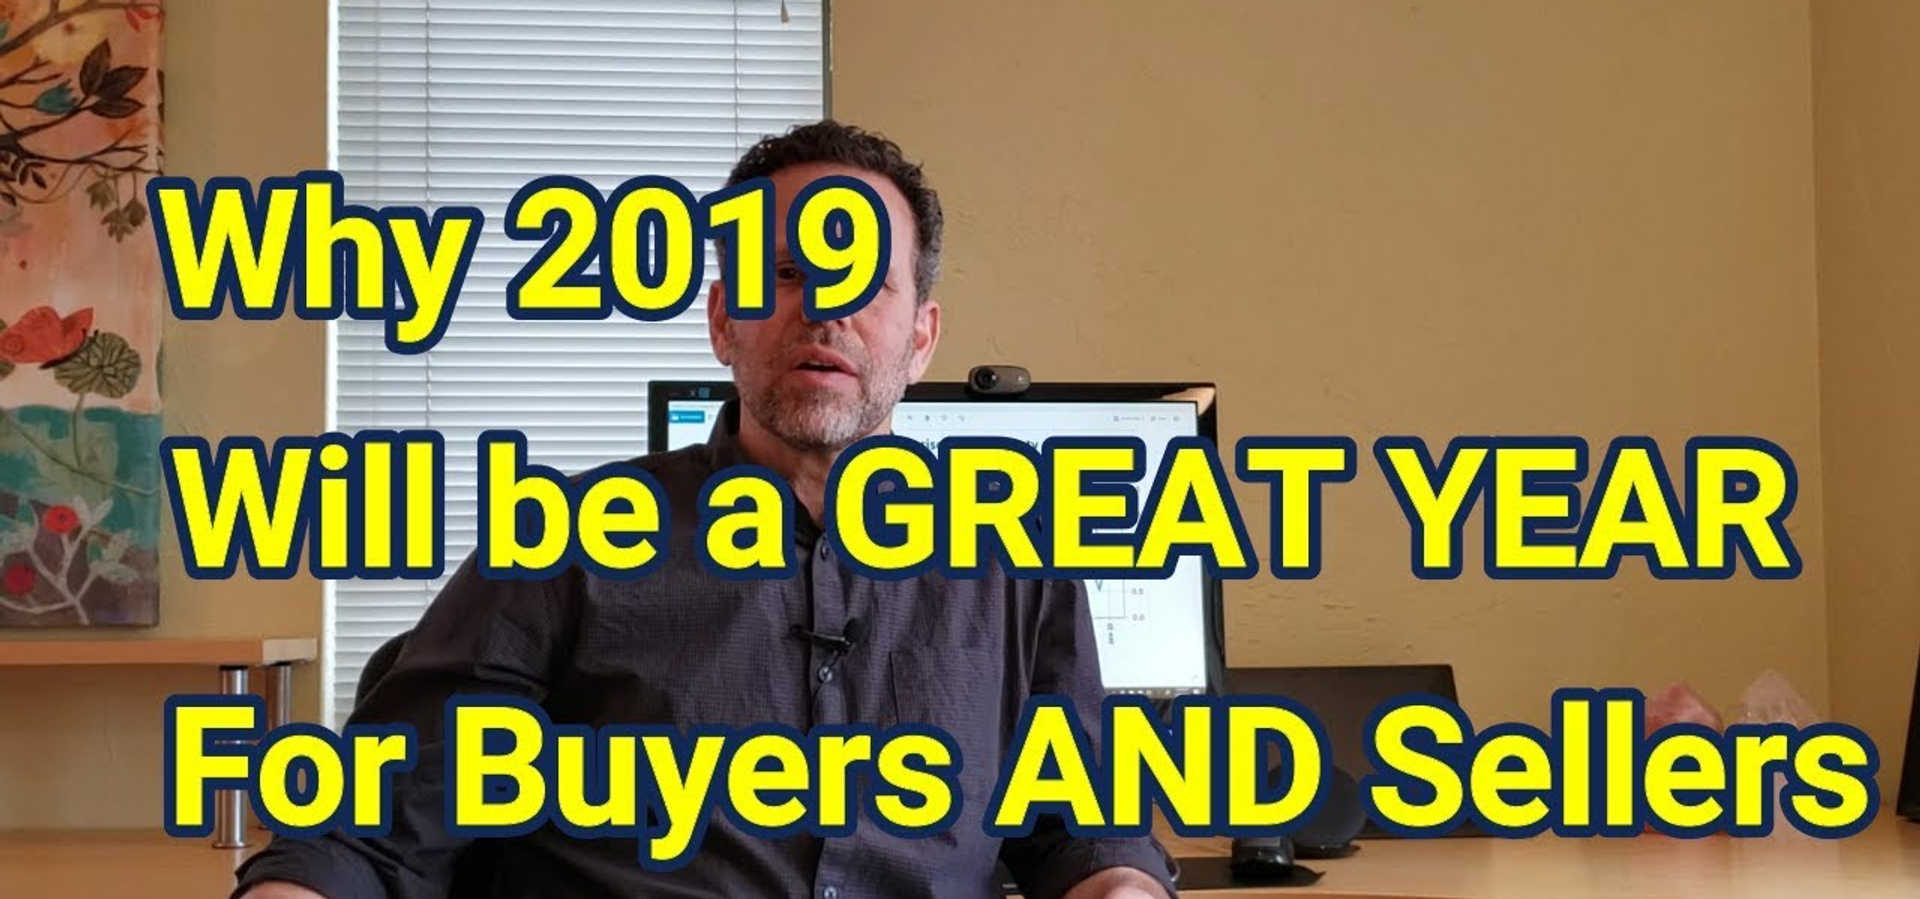 March 2019 Vlog: Why 2019 Will Be a GREAT Year for Buyer AND Seller!